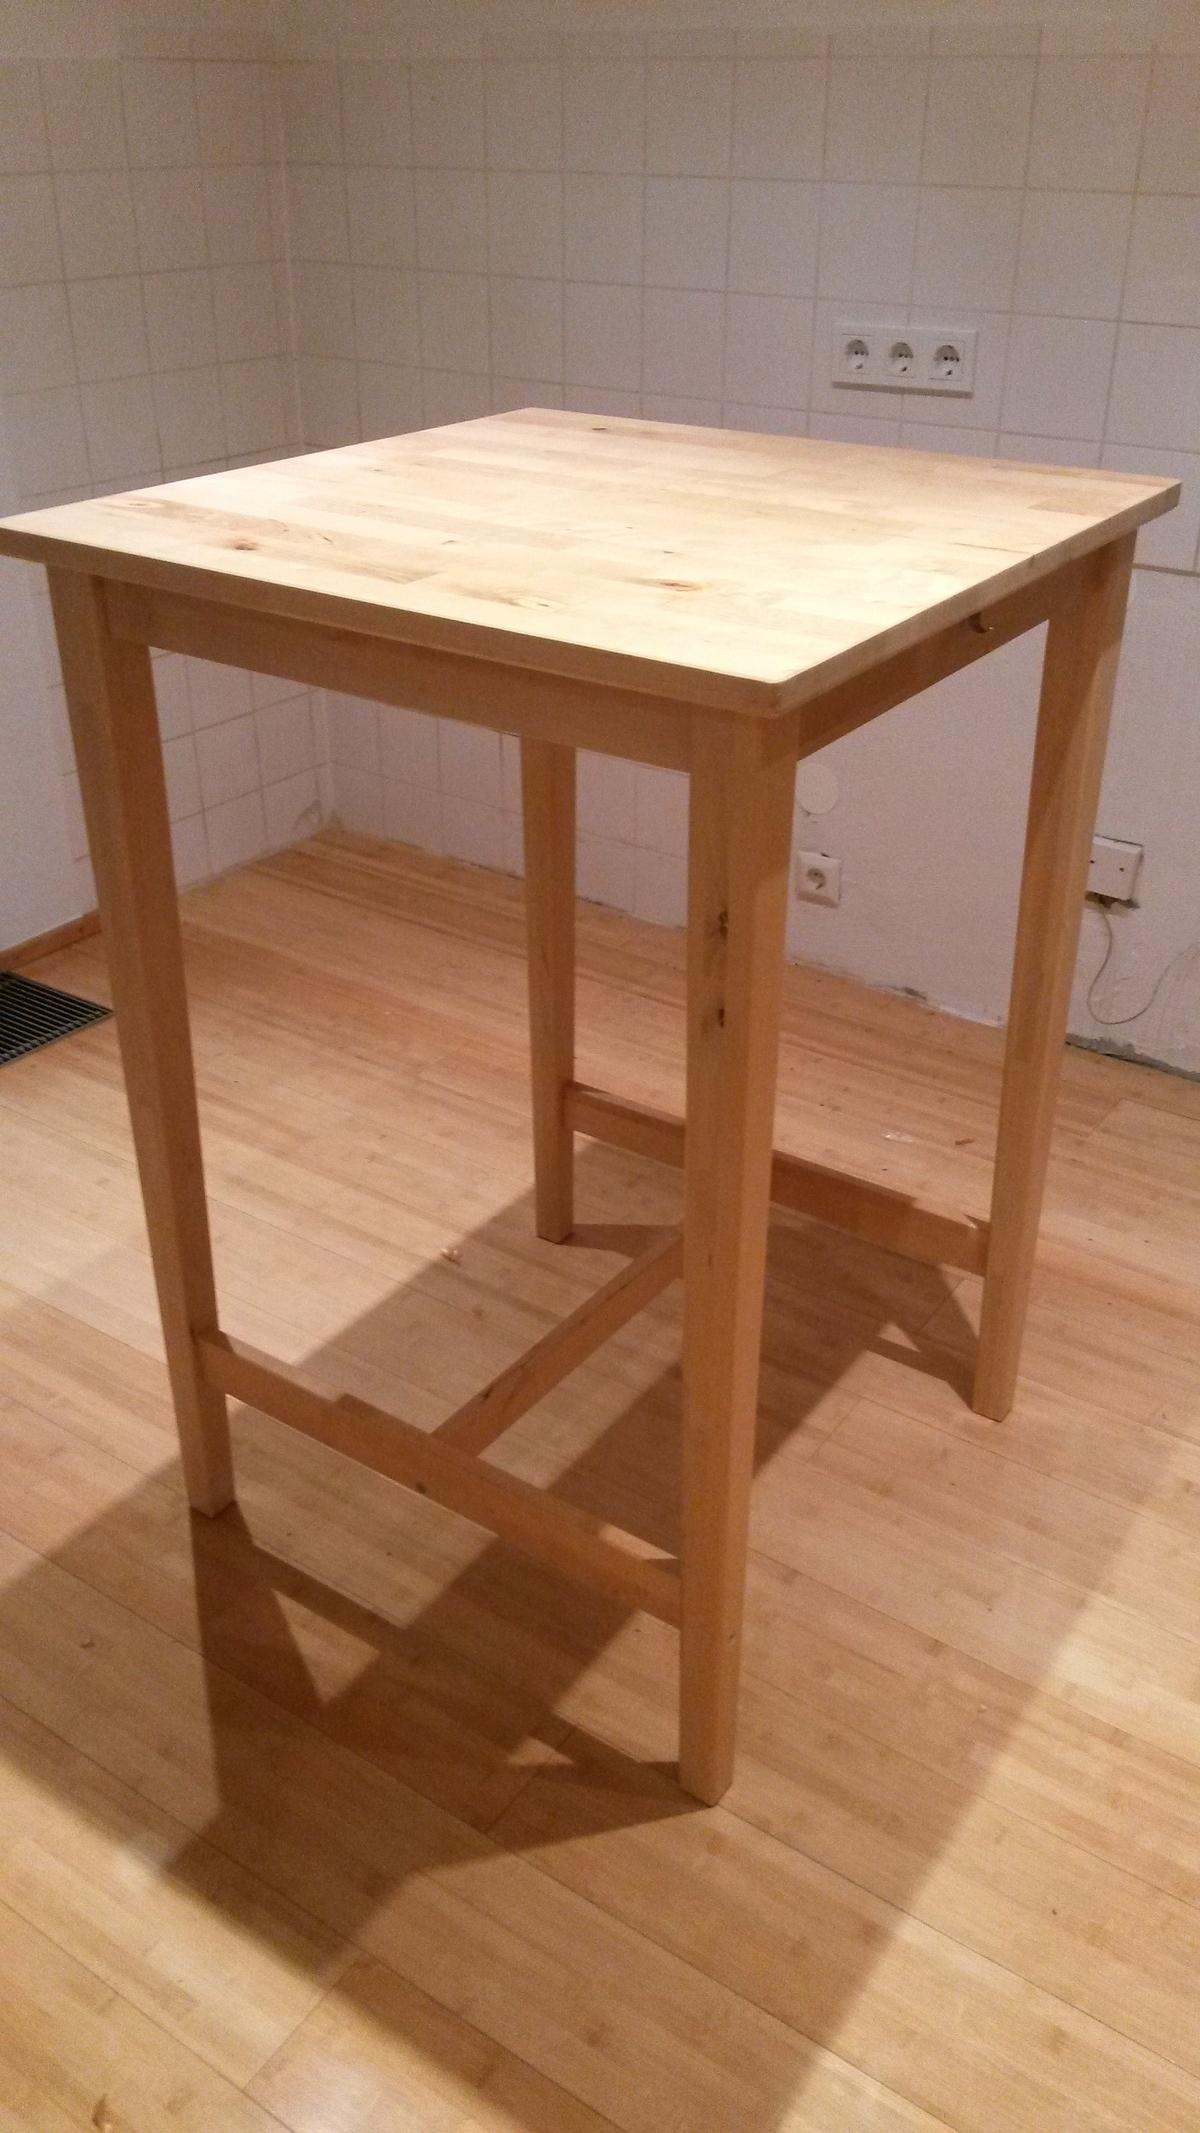 Ikea Hochtisch Holz In 85567 Grafing Bei München For 40 00 For Sale Shpock